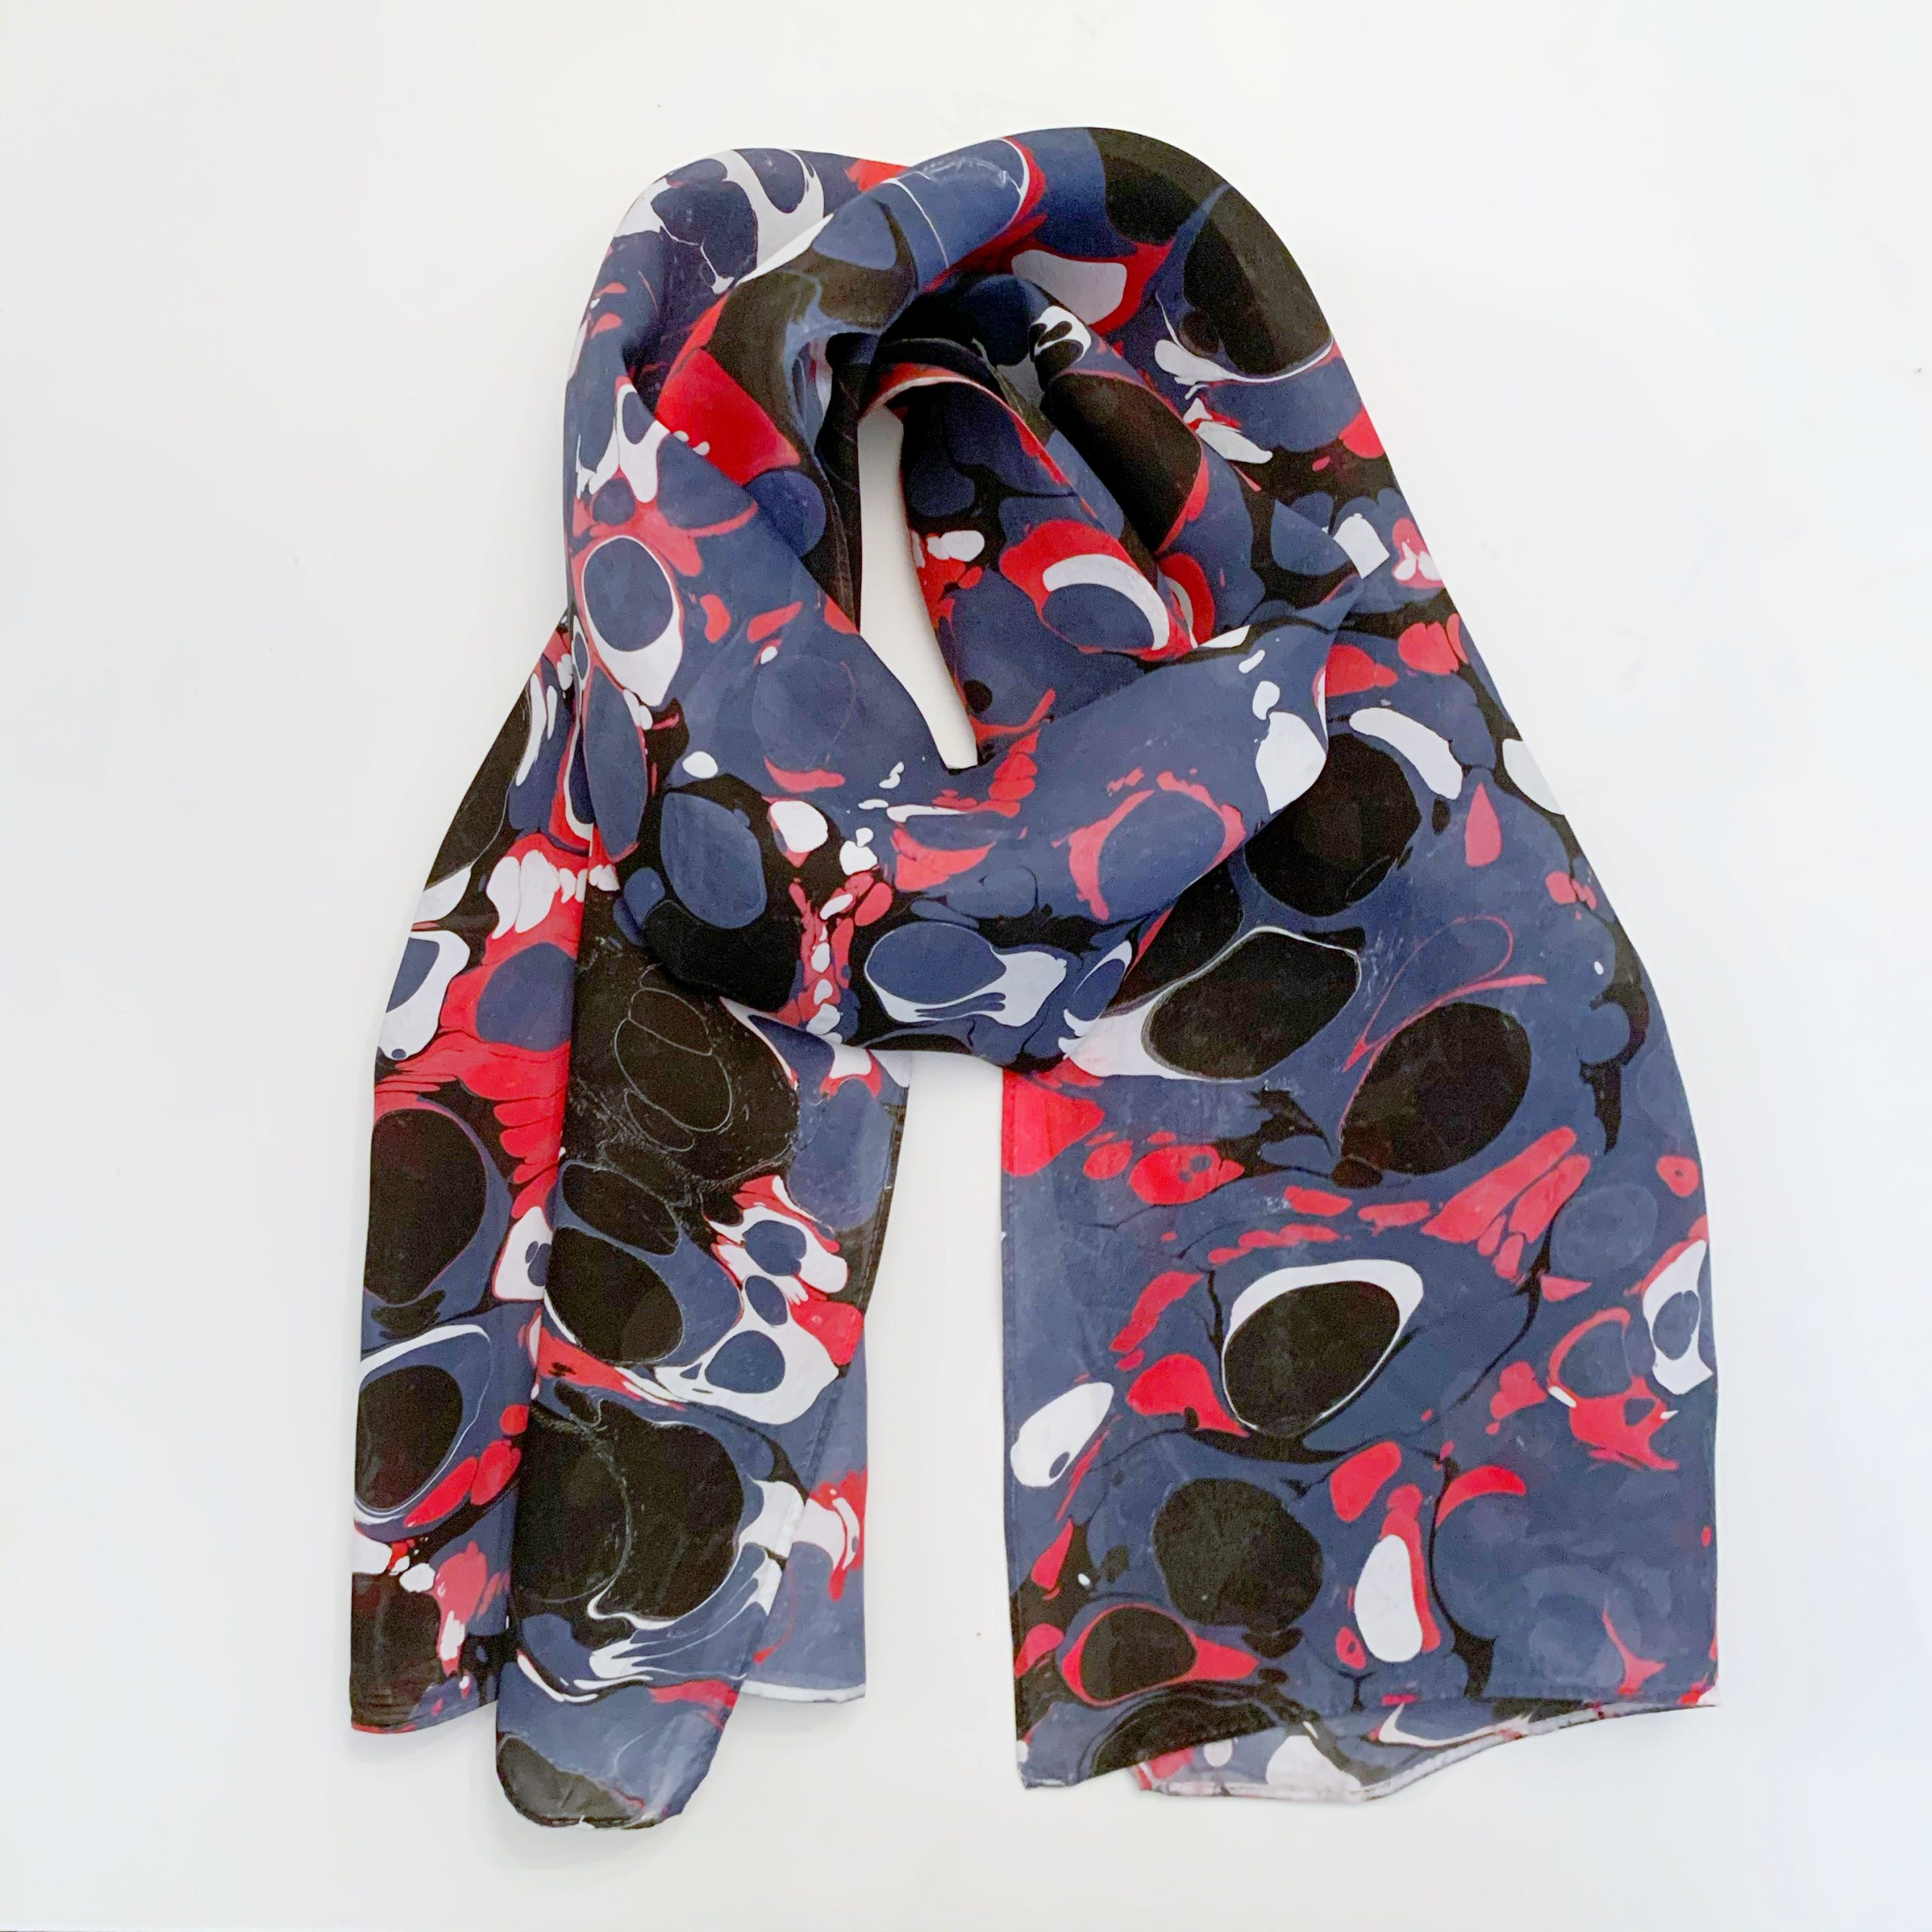 Water marbled Scarf Black, Red, and NavyIMG_4943